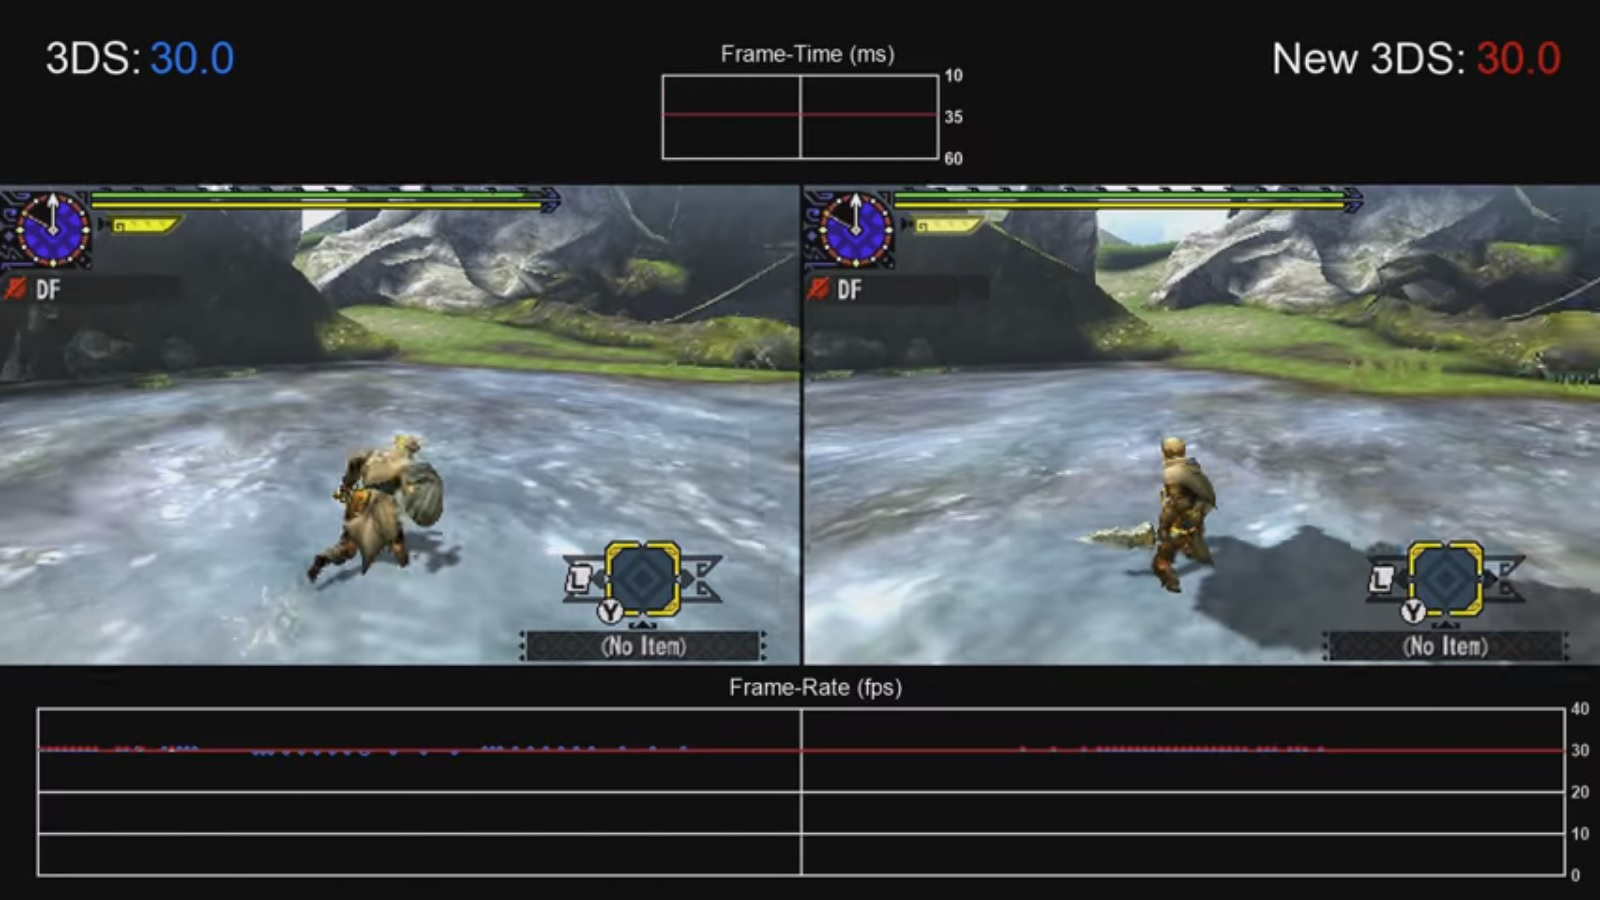 Monster Hunter Generations - New 3DS / 3DS frame rate test and ...